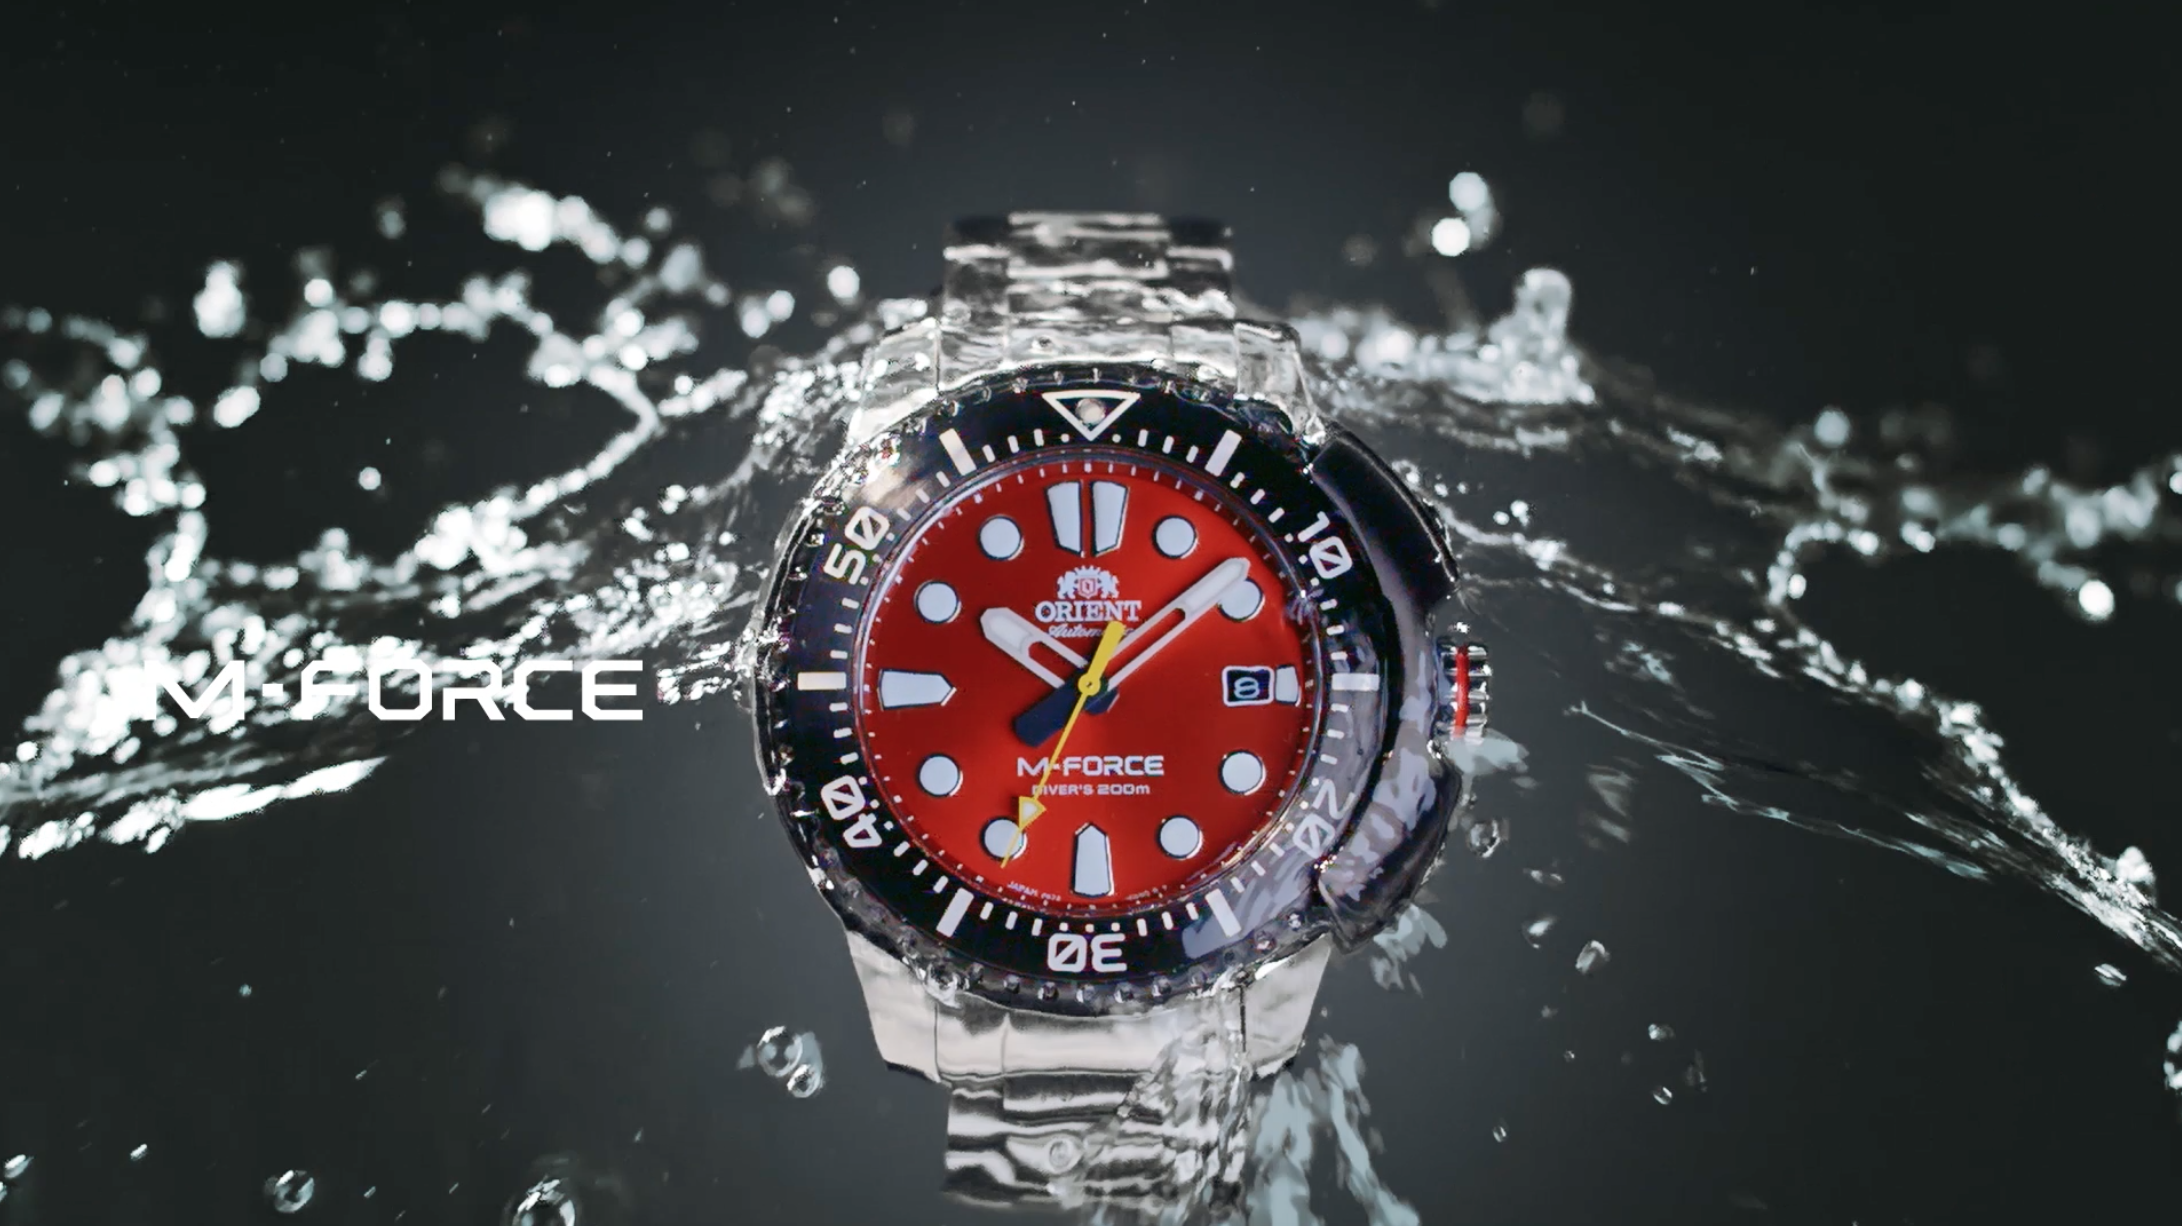 The Popular Orient M-Force Sports Collection Gets A Bold New Look